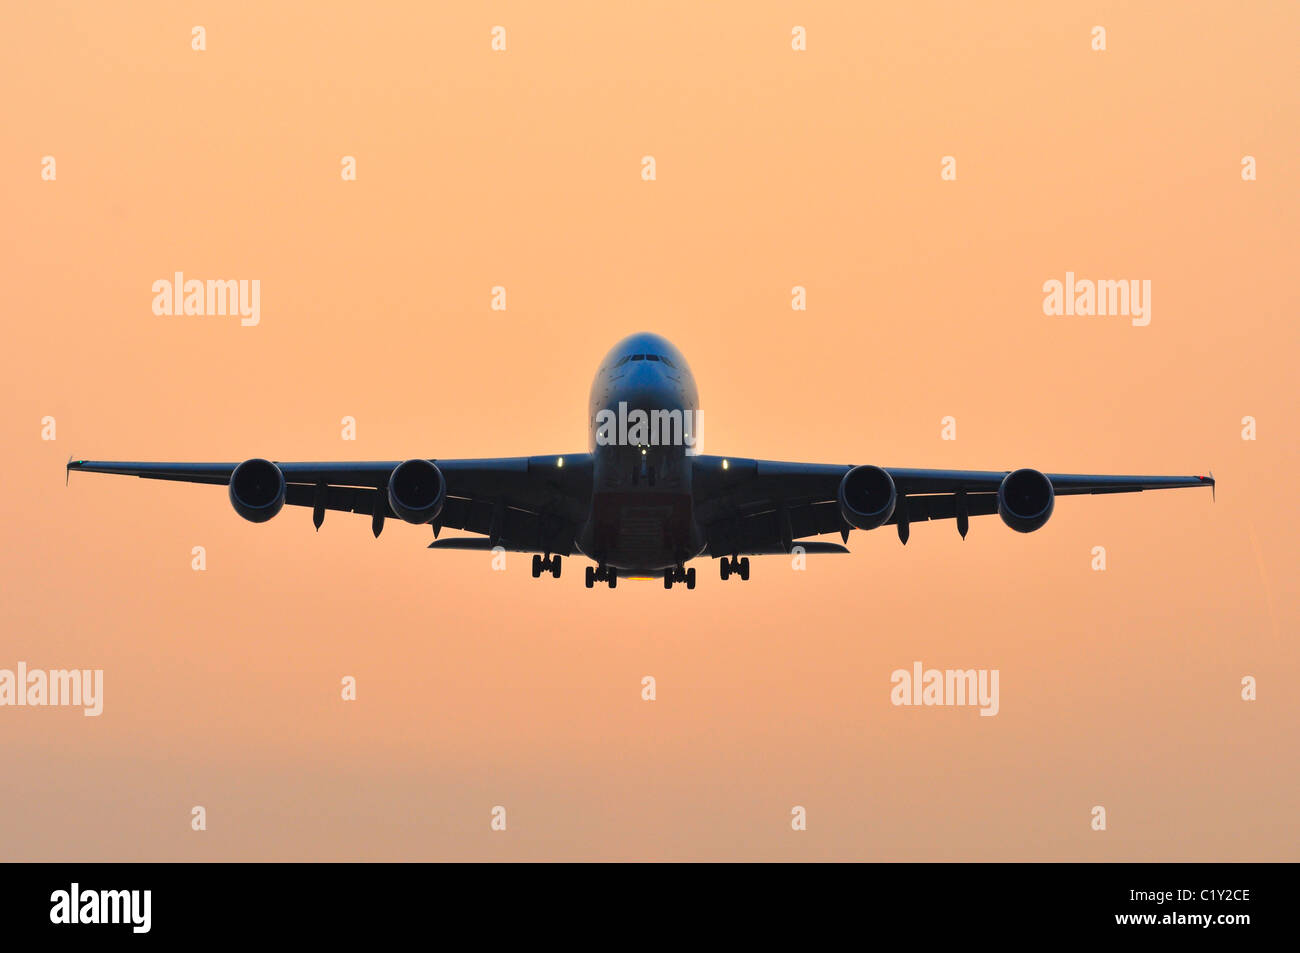 Airbus A380 Airplane coming into Land during sunset at Heathrow Airport - Stock Image